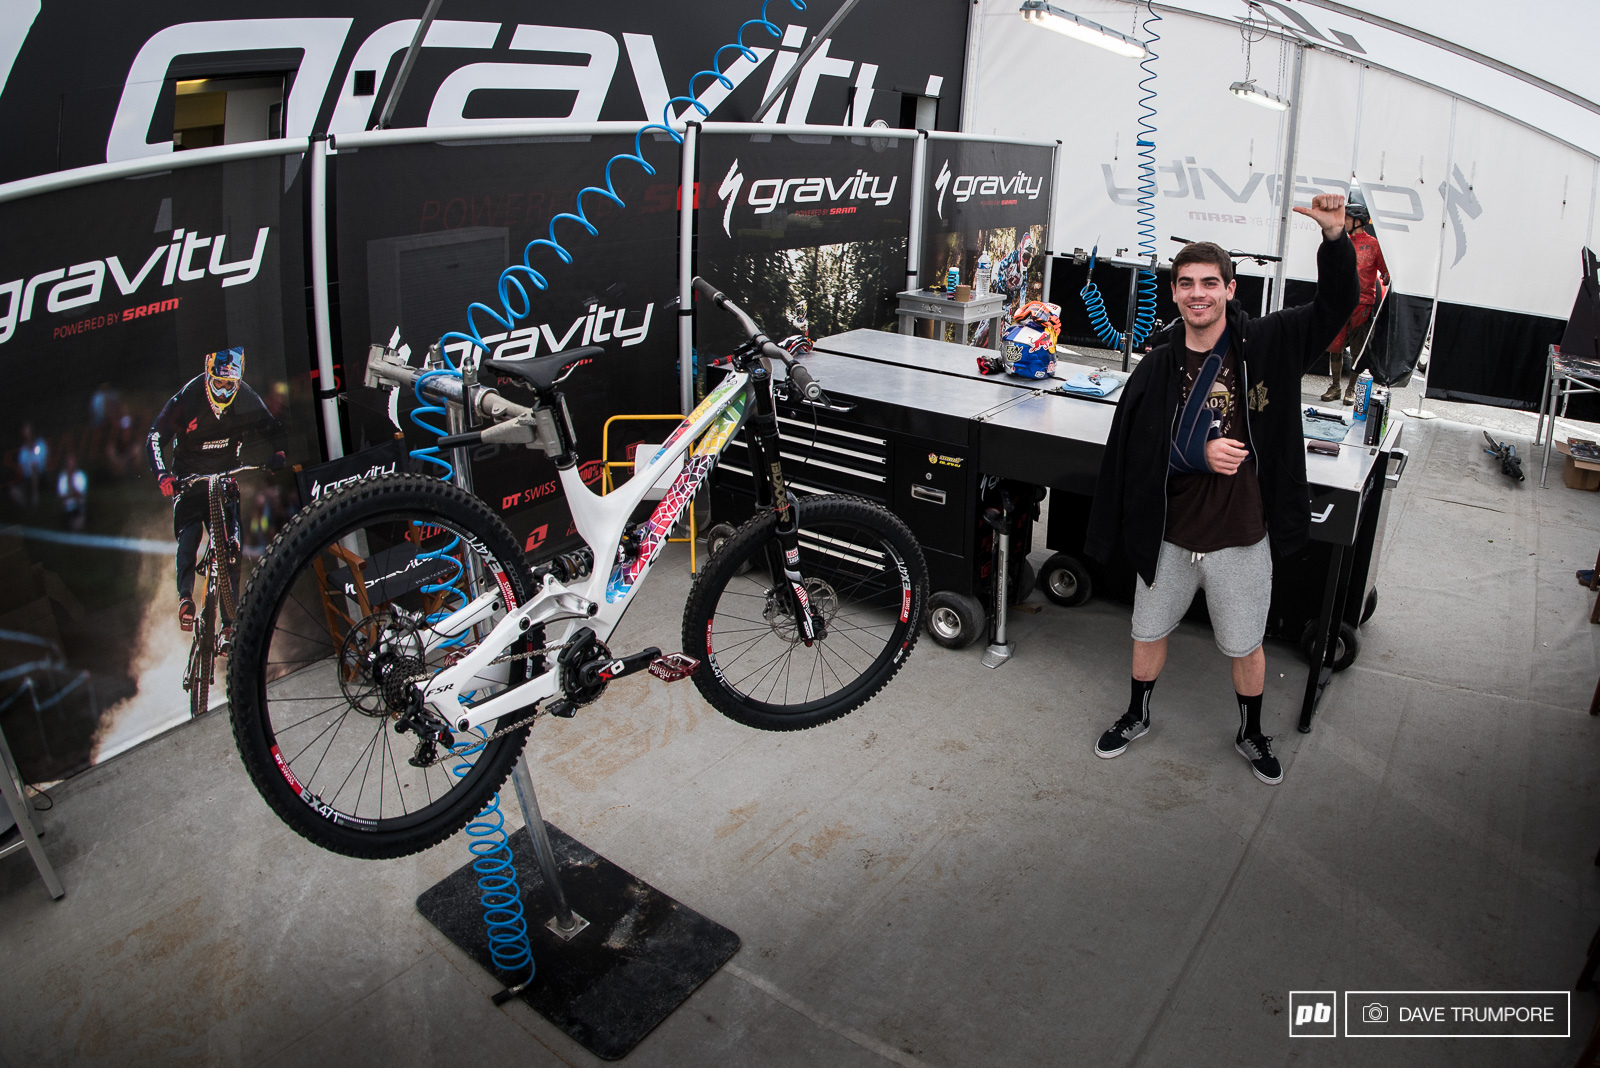 Still in a sling Loic Bruni is here and pumped to see his friends take on this beast of a DH track.